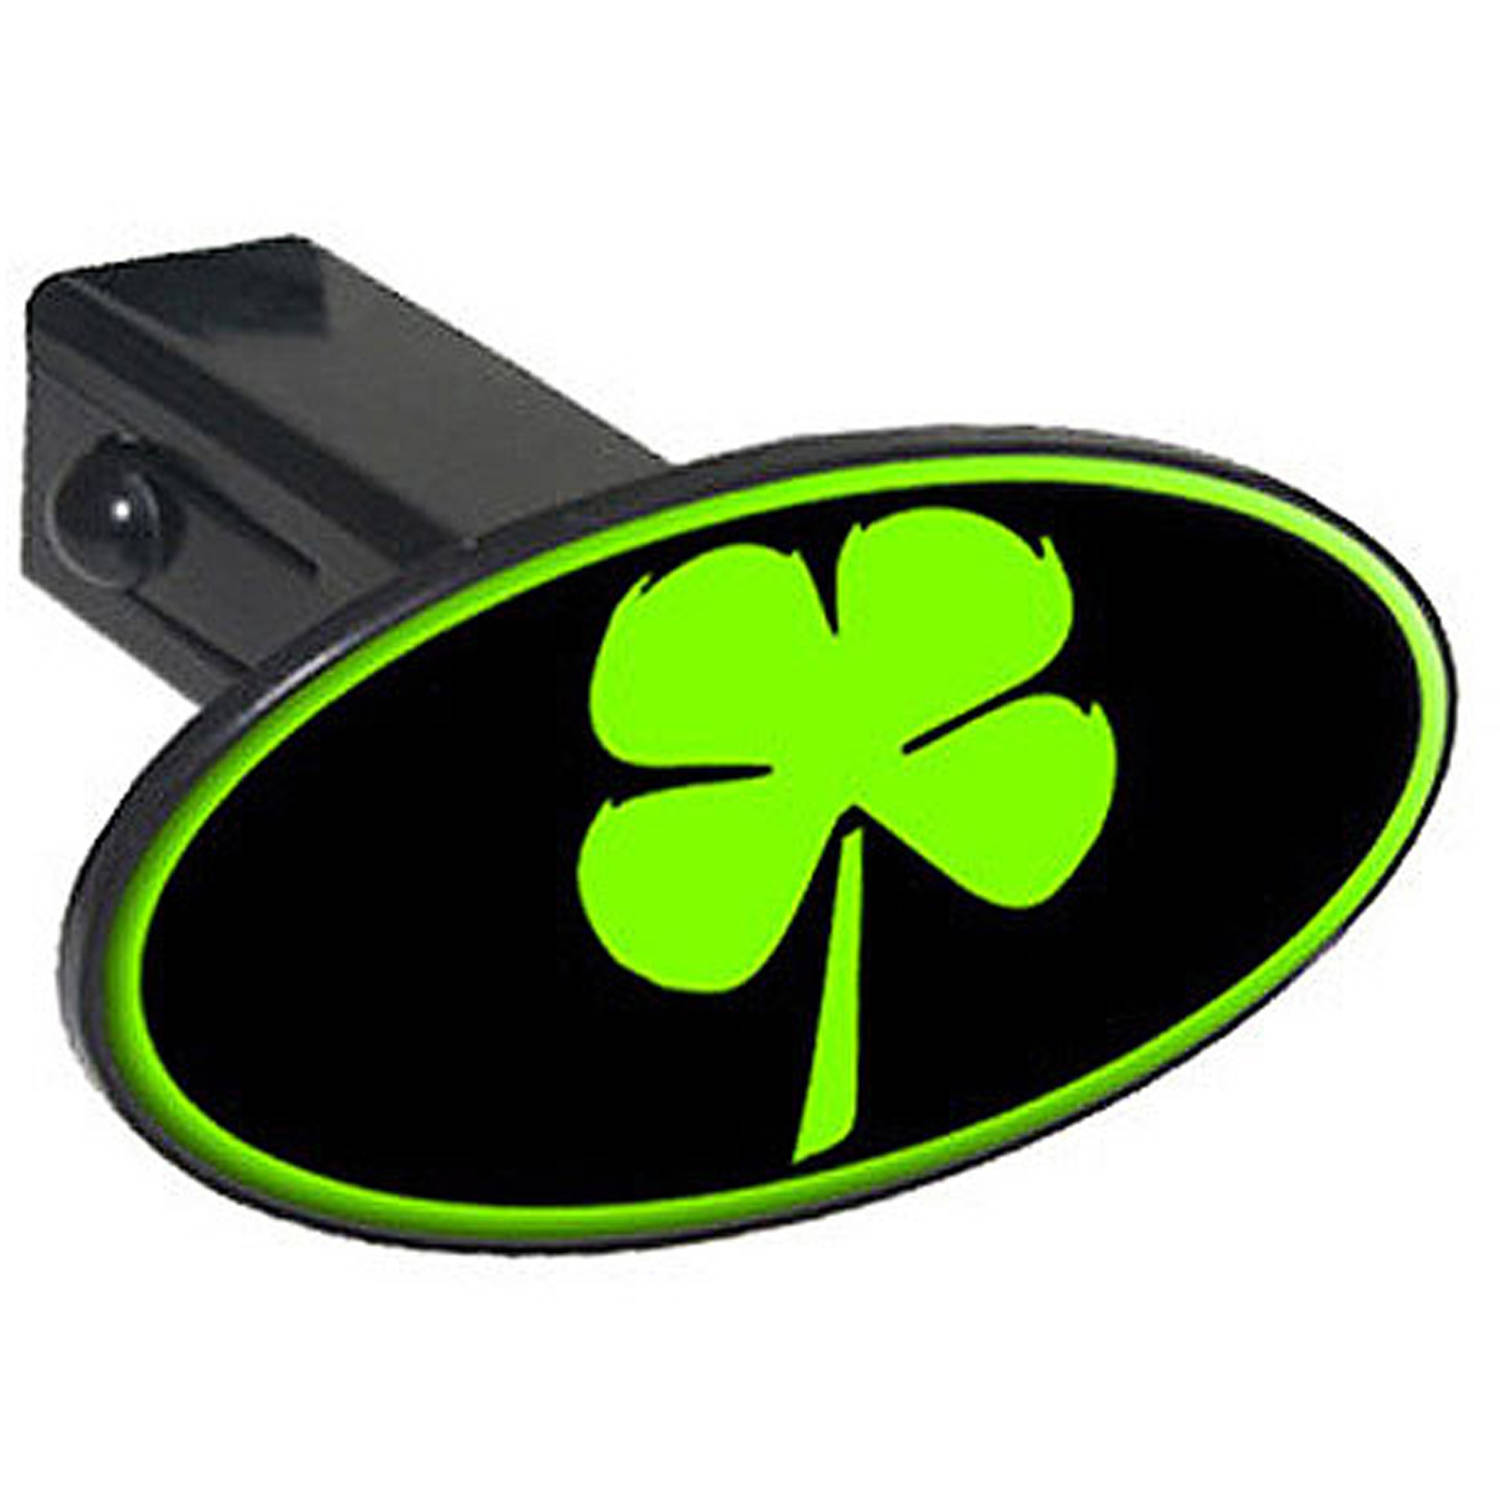 "Four Leaf Clover, Irish Luck 1.25"" Oval Tow Trailer Hitch Cover Plug Insert"